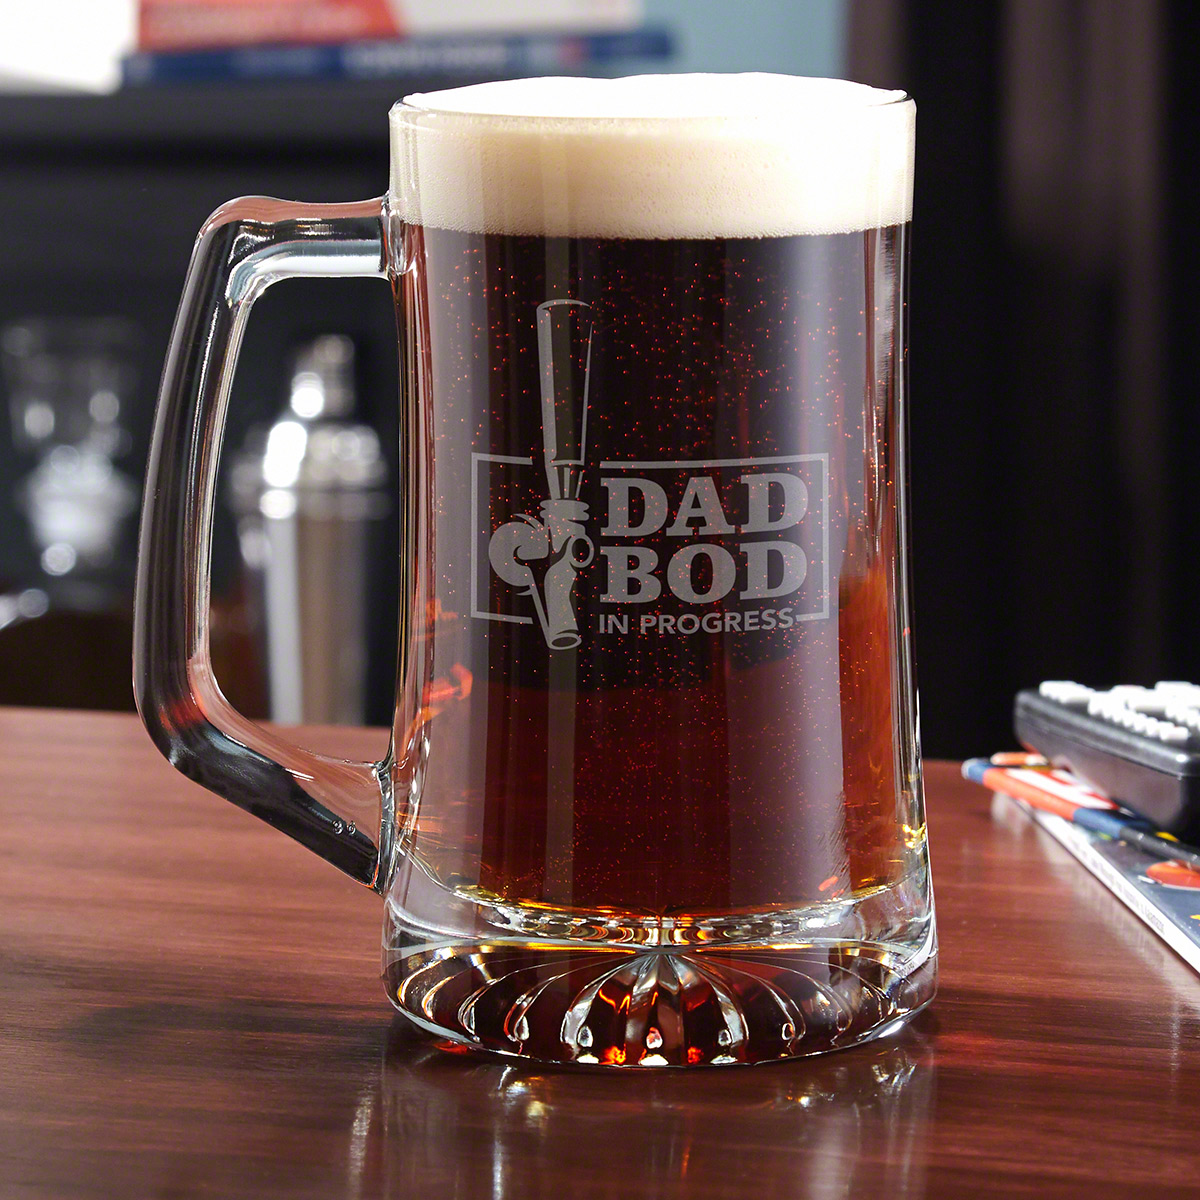 The Dad Bod Funny Beer Stein Gift for Dads